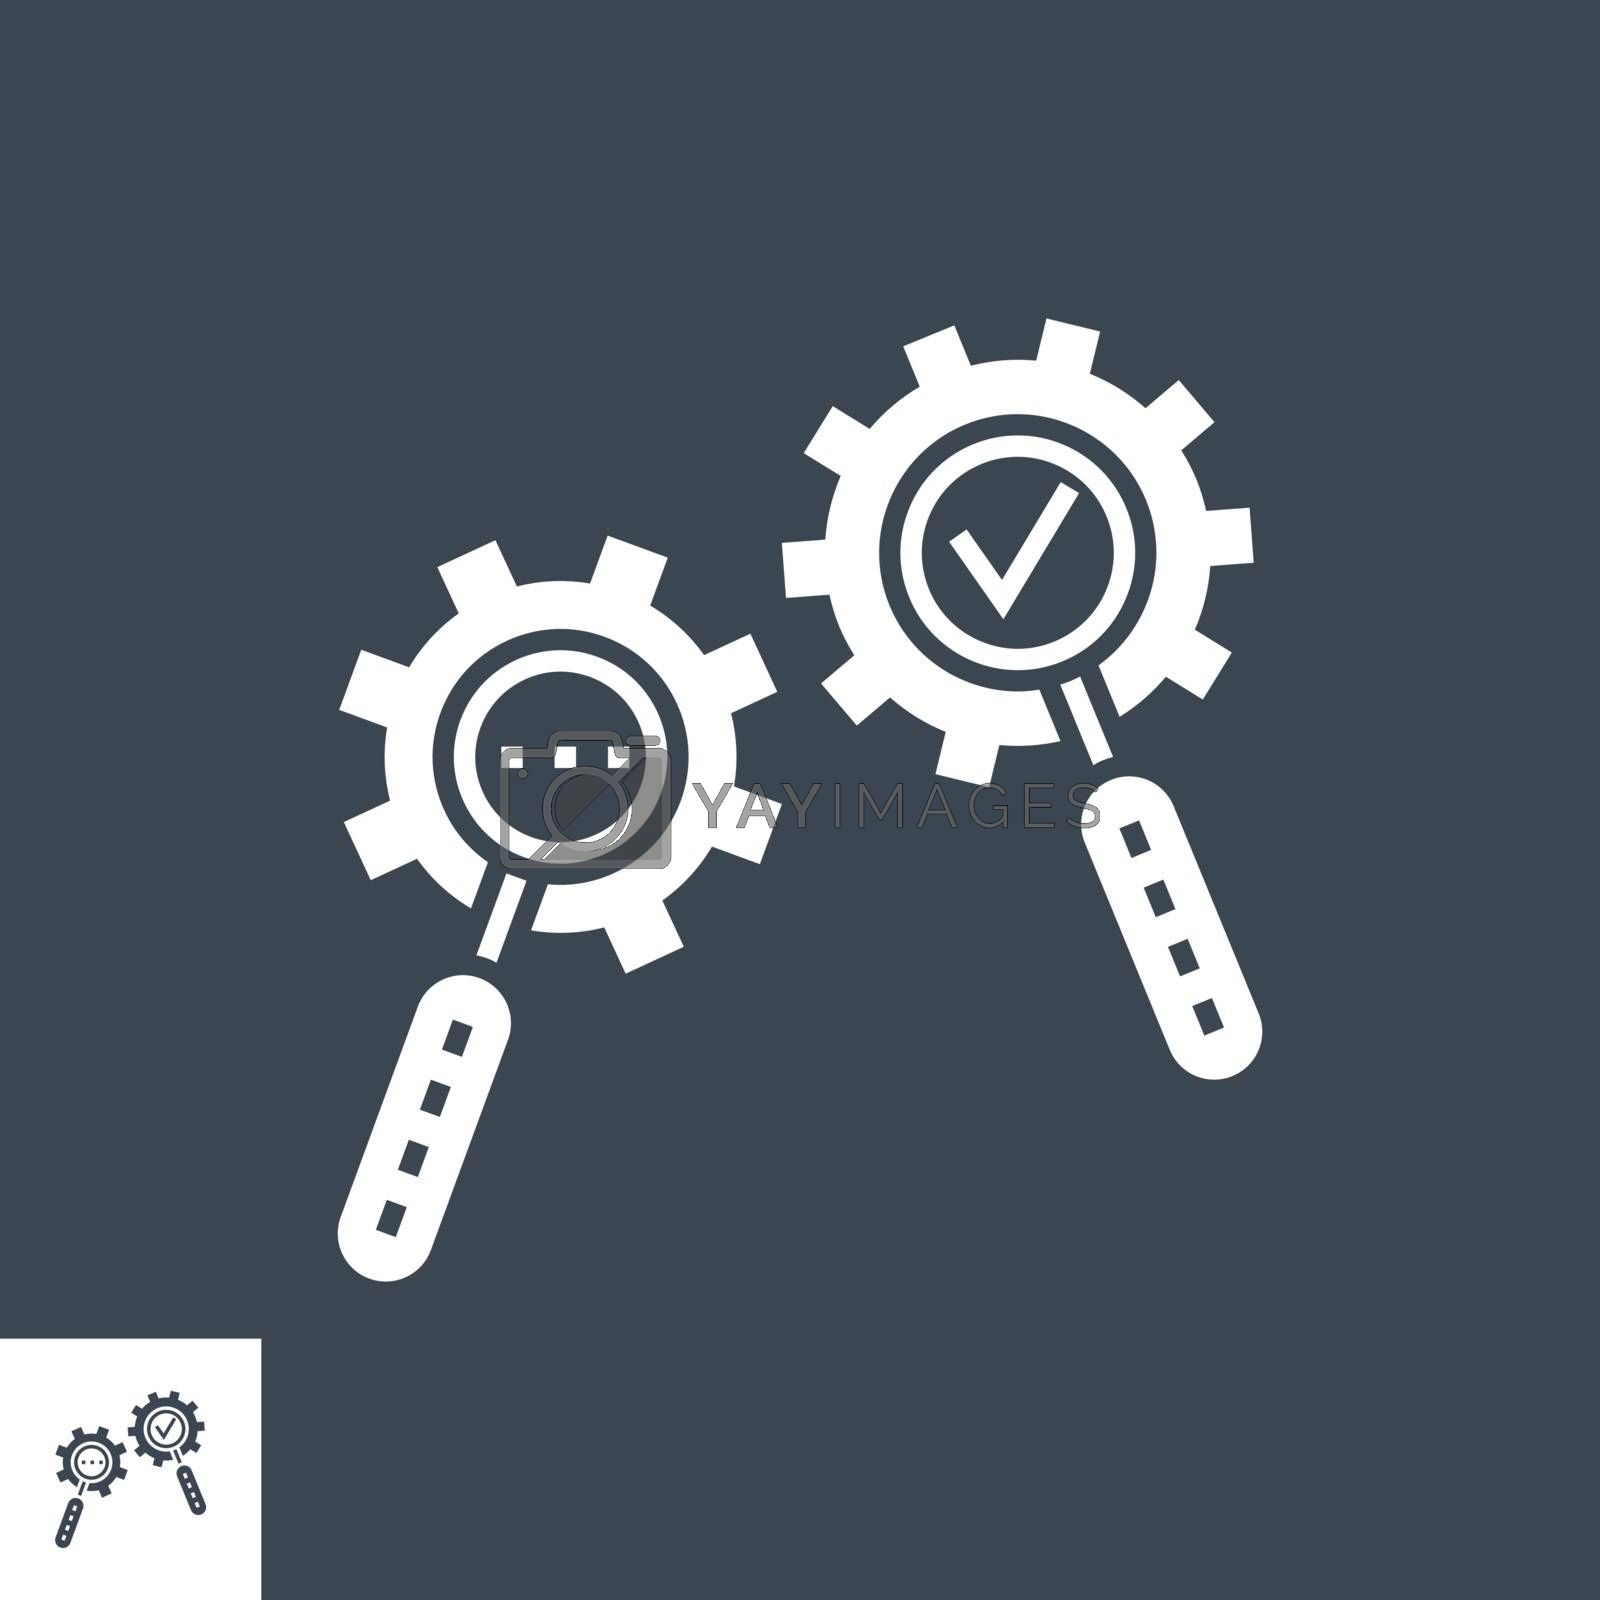 Search Process Related Vector Glyph Icon. Isolated on Black Background. Vector Illustration.